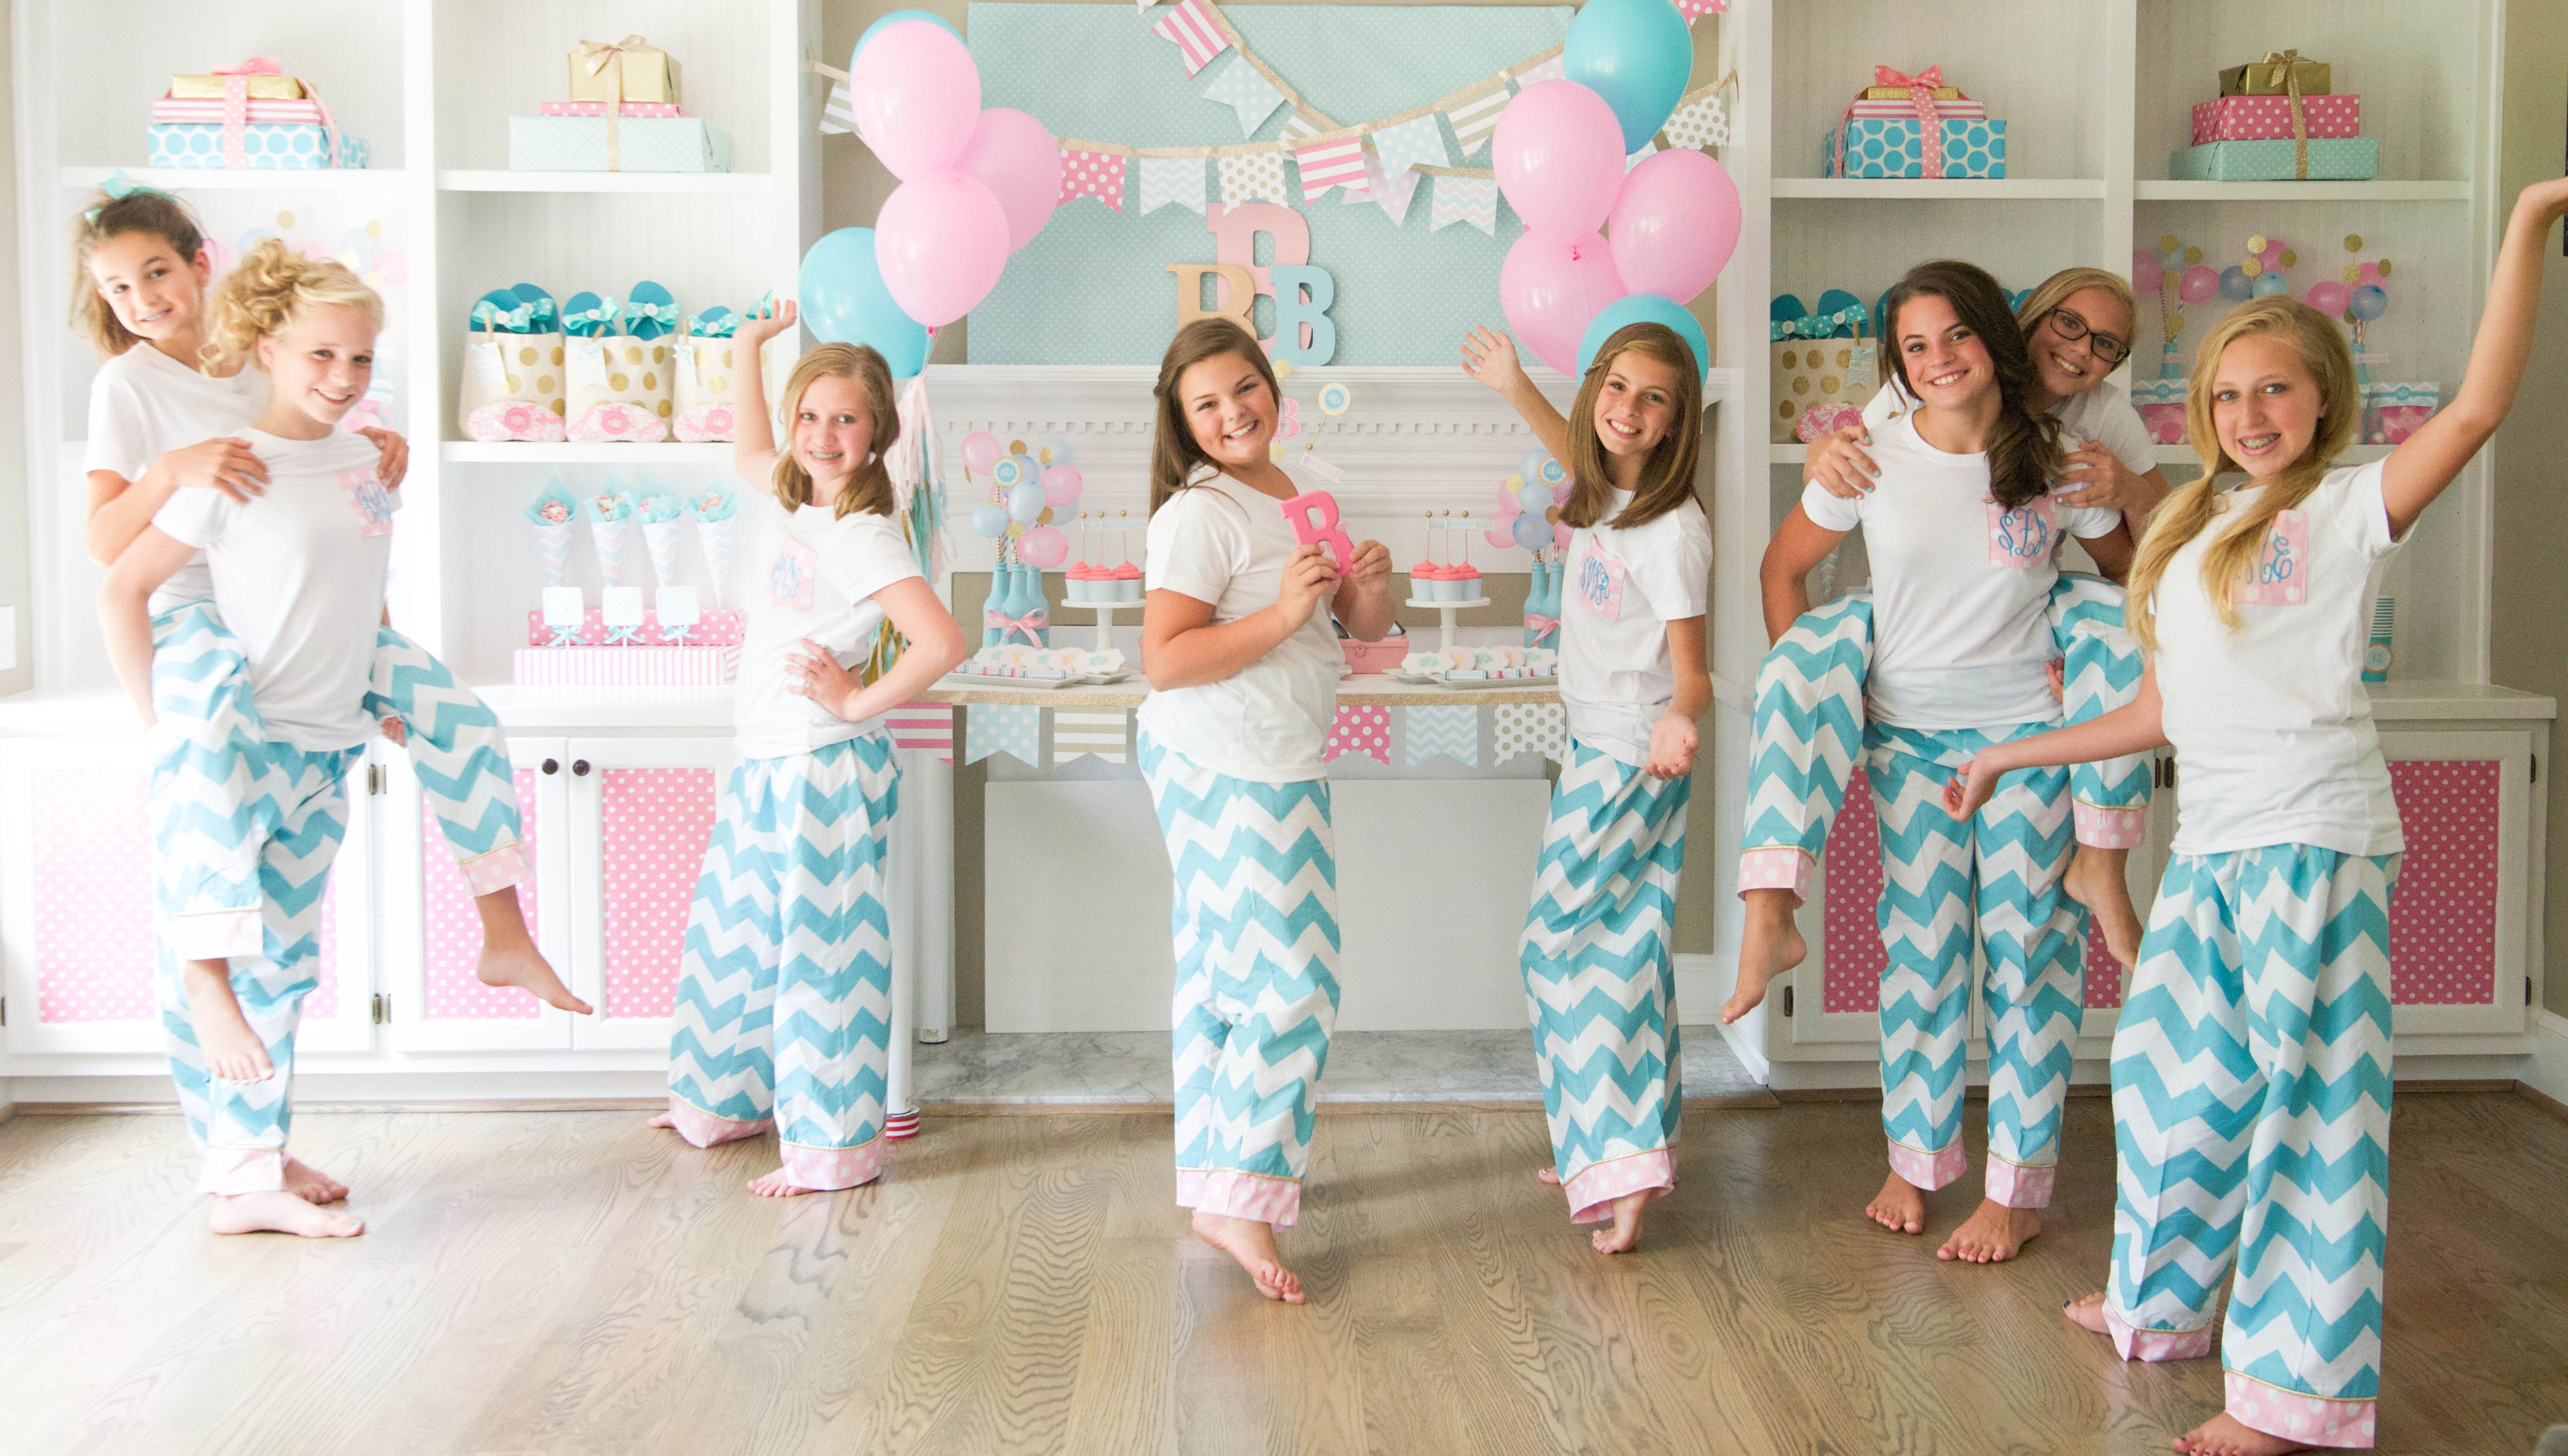 Monogram Slumber Birthday Party For Tweens Or Teens With Shades Of Pink Aqua And Glittery